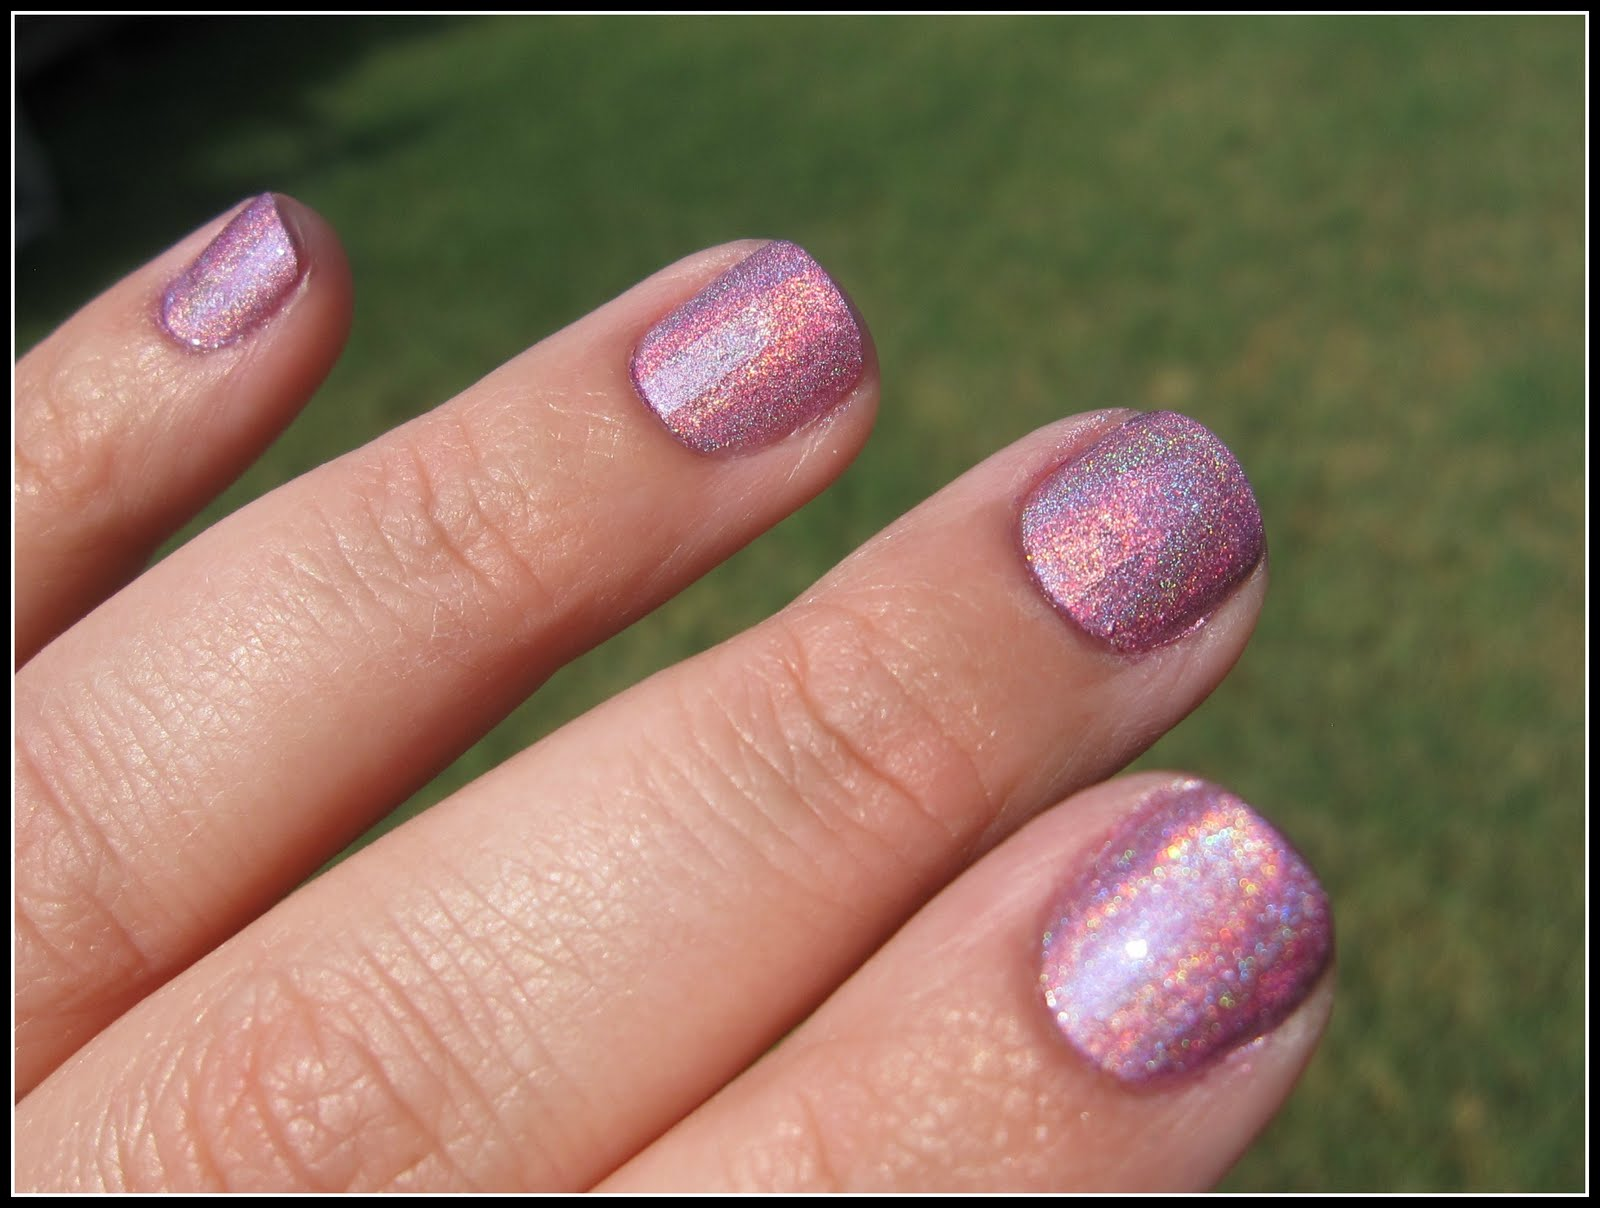 Manicure Post: Nfu Oh 64 - At the Pink of Perfection